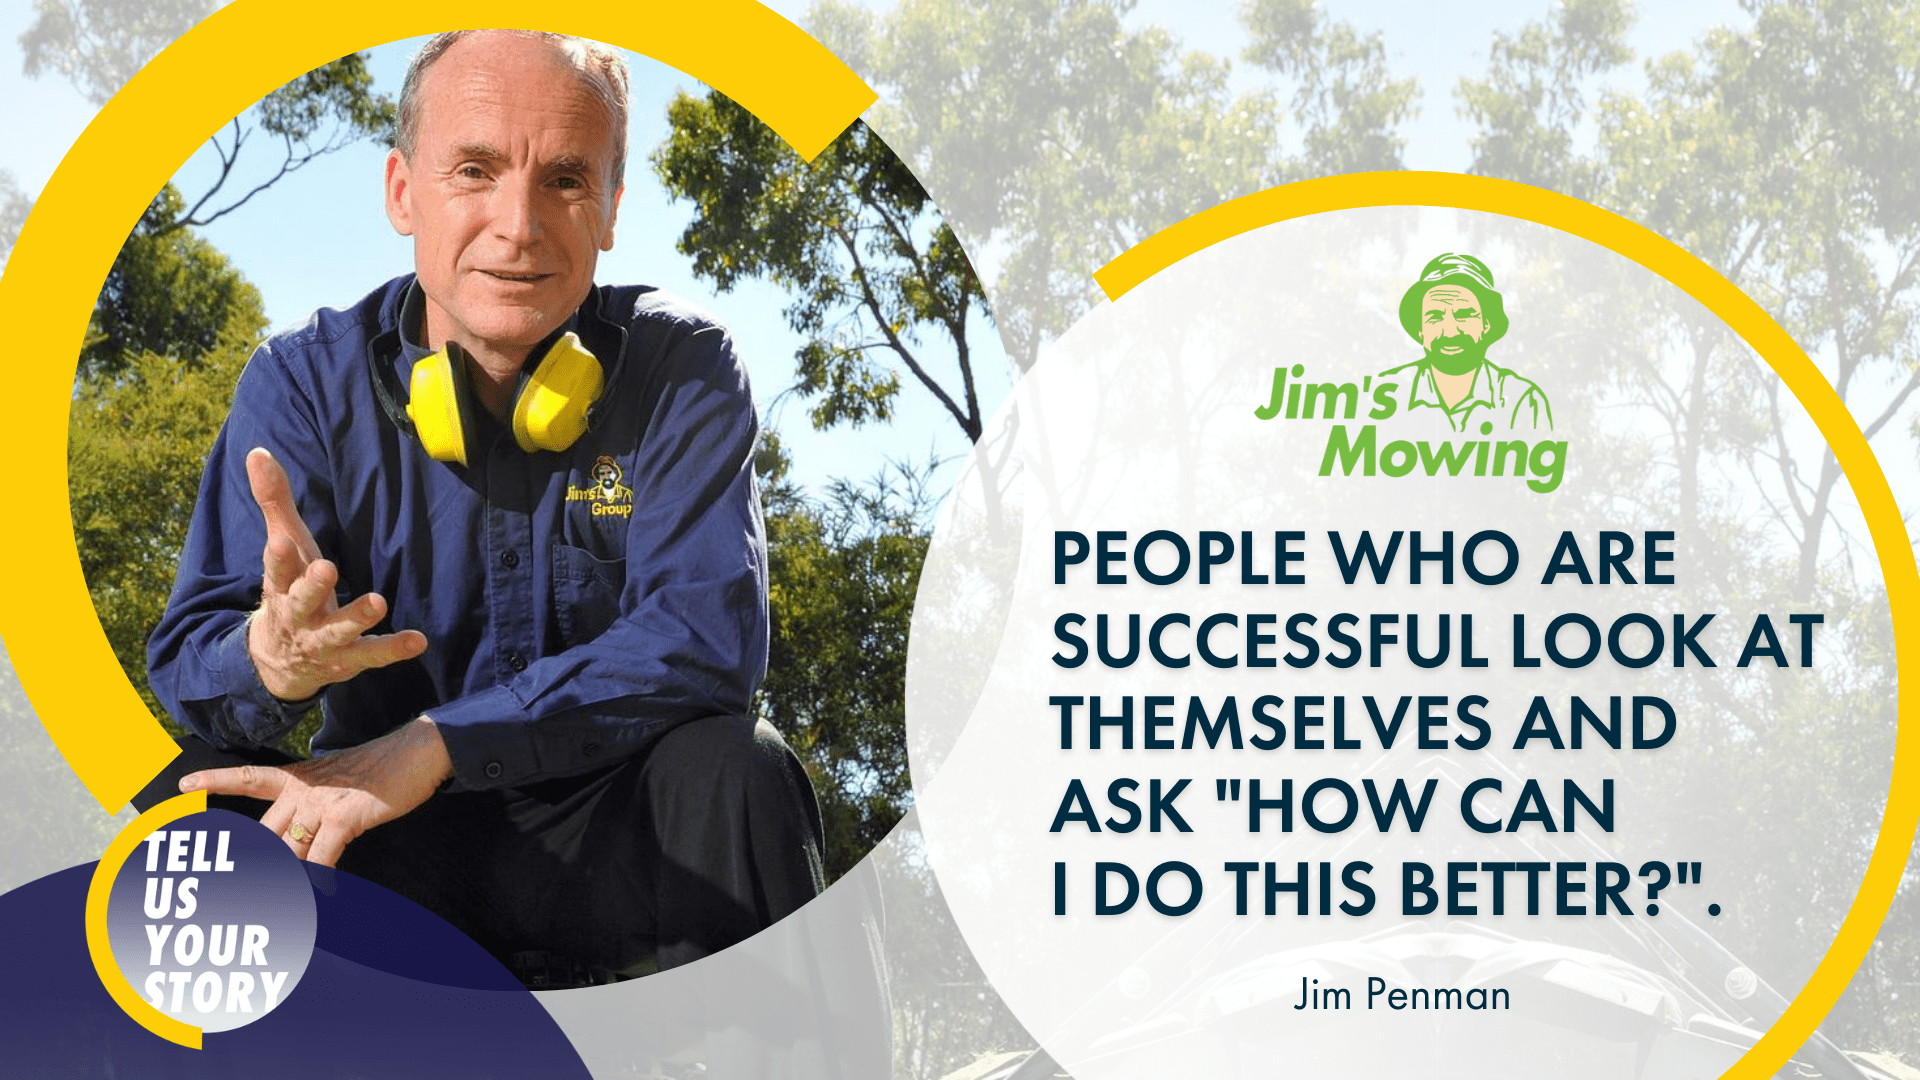 Tell Us Your Story Episode 7: Jim Penman of Jim's Mowing